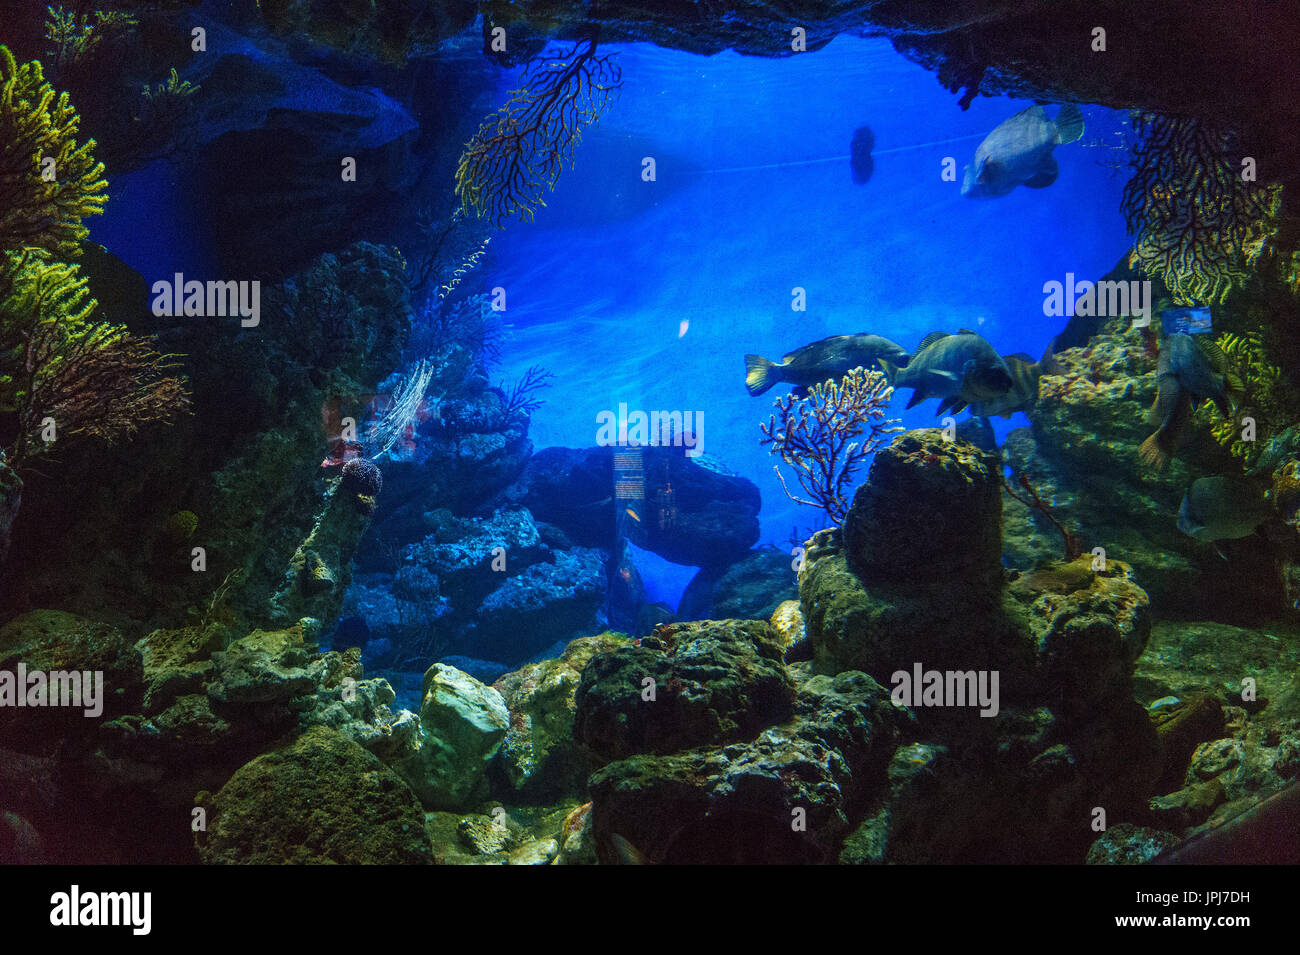 Interior of the Aquarium Barcelona (L'Aquarium de Barcelona). Its the biggest mediterranean thematic aquarium, located in Port Vell. - Stock Image